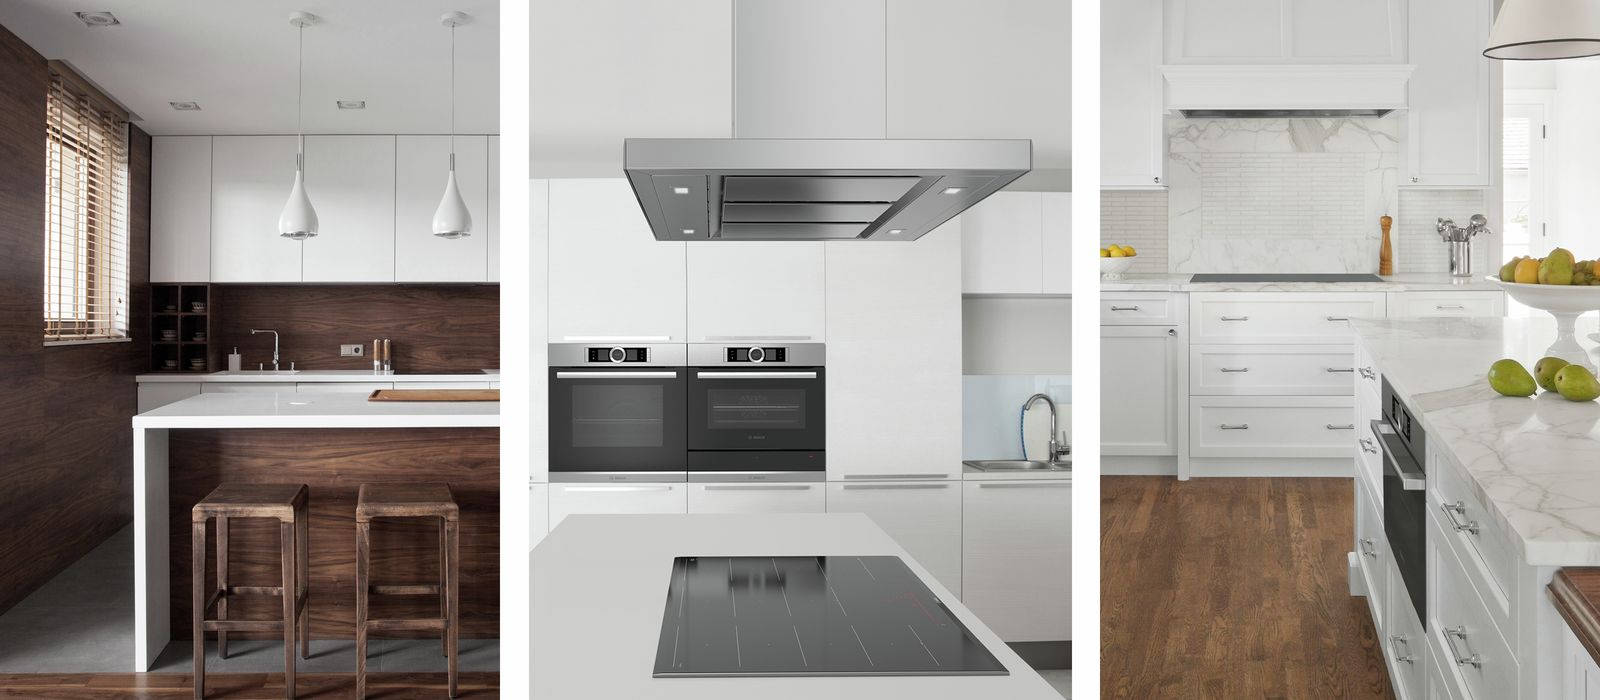 Step 2: Choose The Shape, Style And Colour Of Your Kitchen.